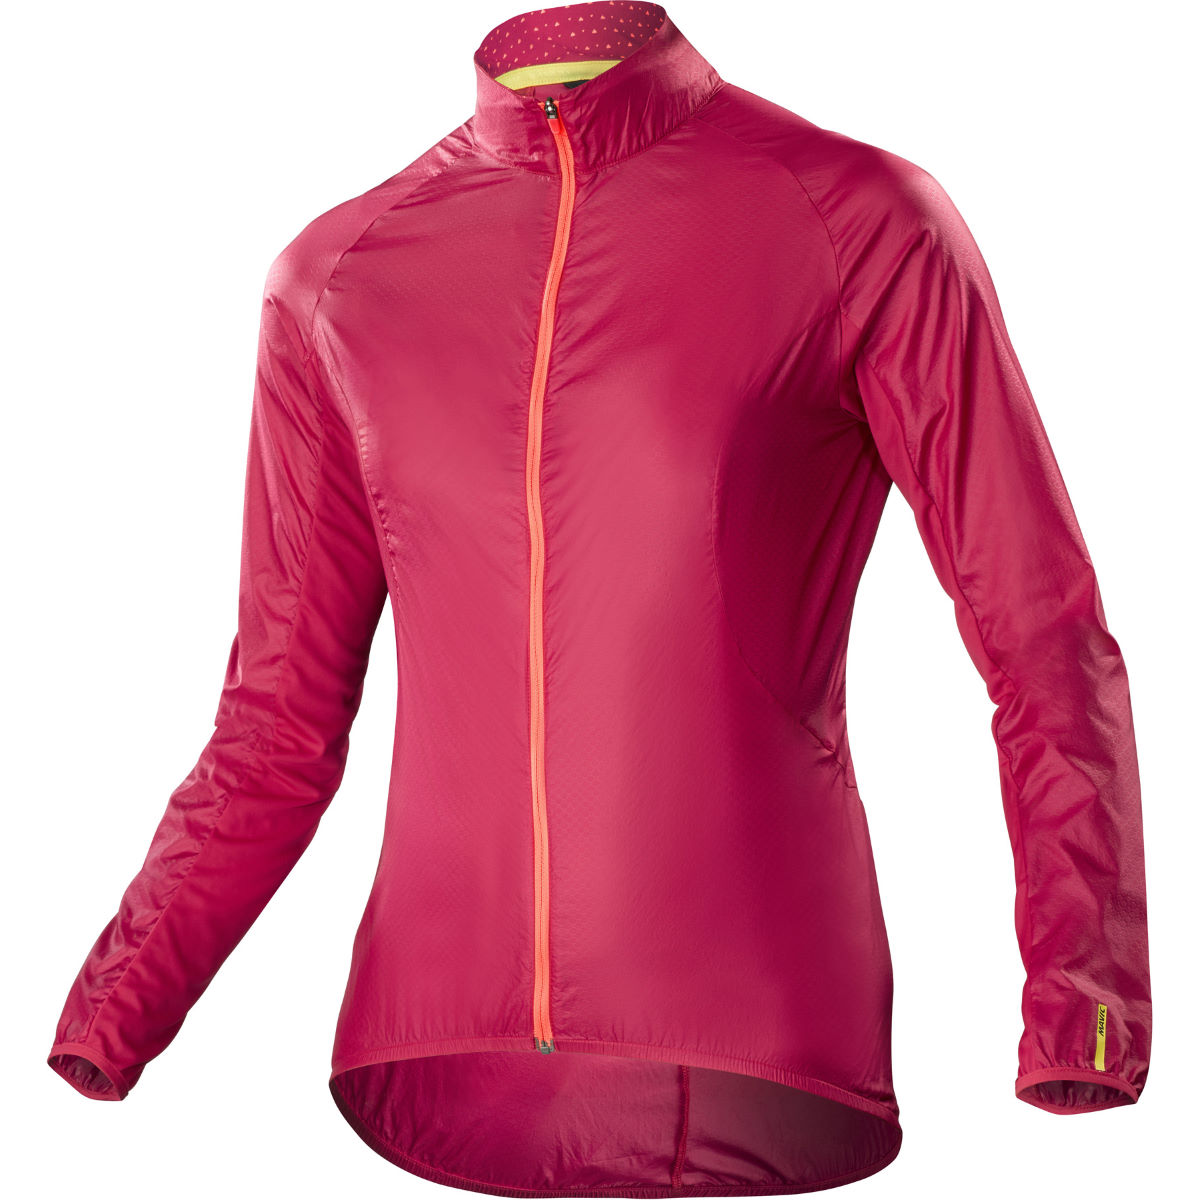 Veste Mavic Sequence Wind - XL Jazzy Vestes